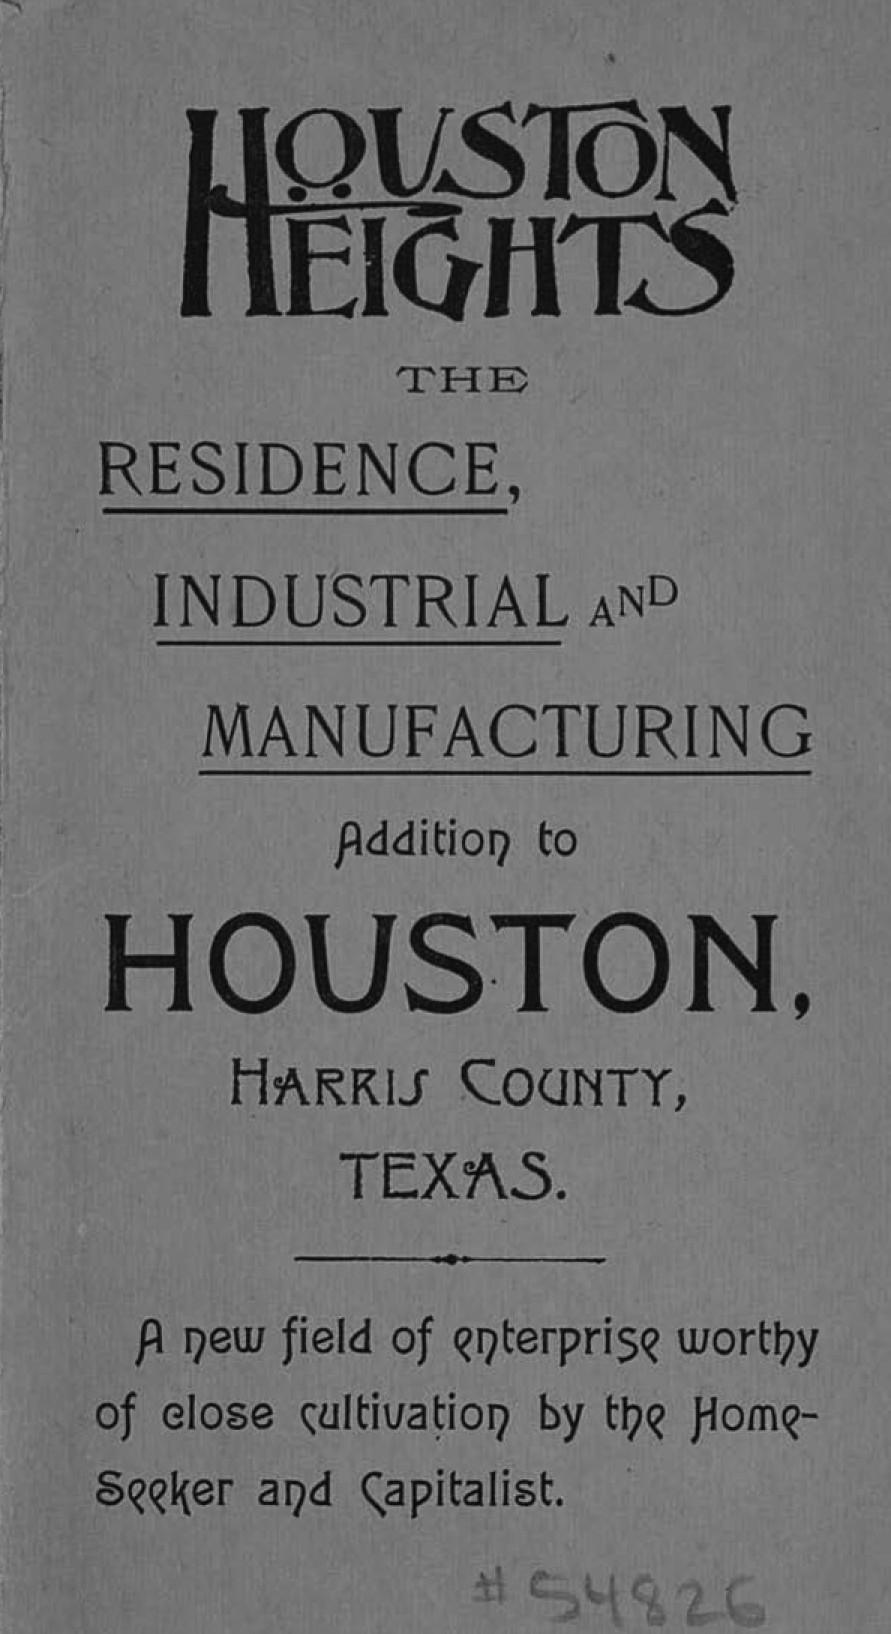 Mapping Houston Heights — Houston's First Suburb - Save